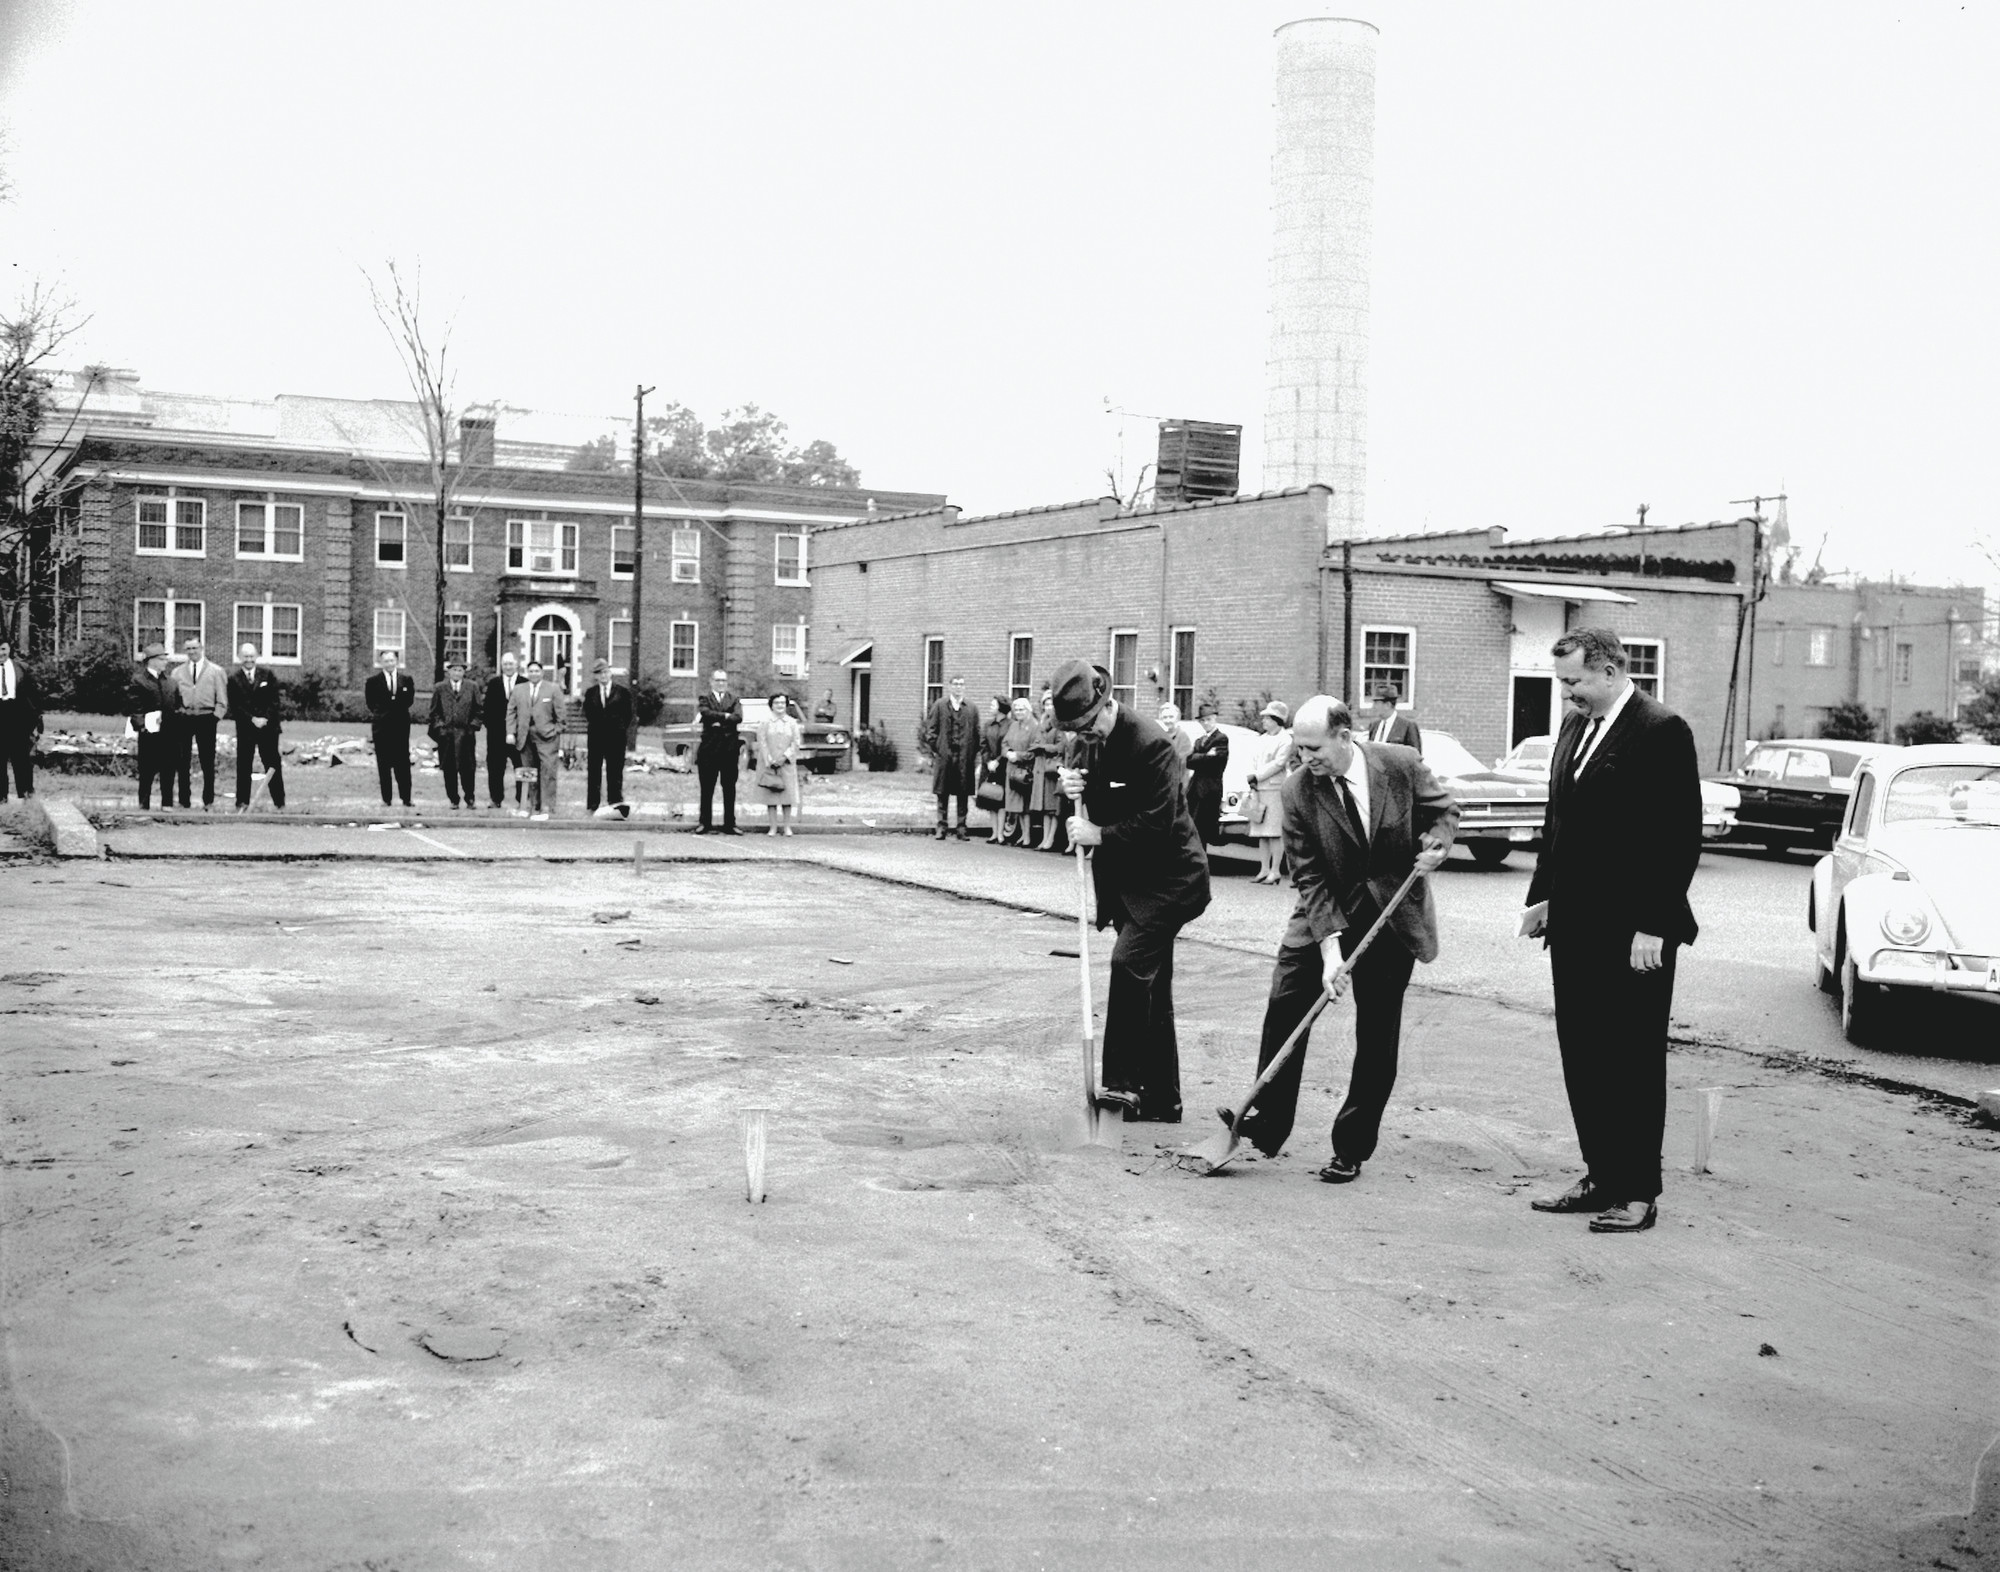 Sumterites break ground for the library in 1967 with the Agricultural building in the background.